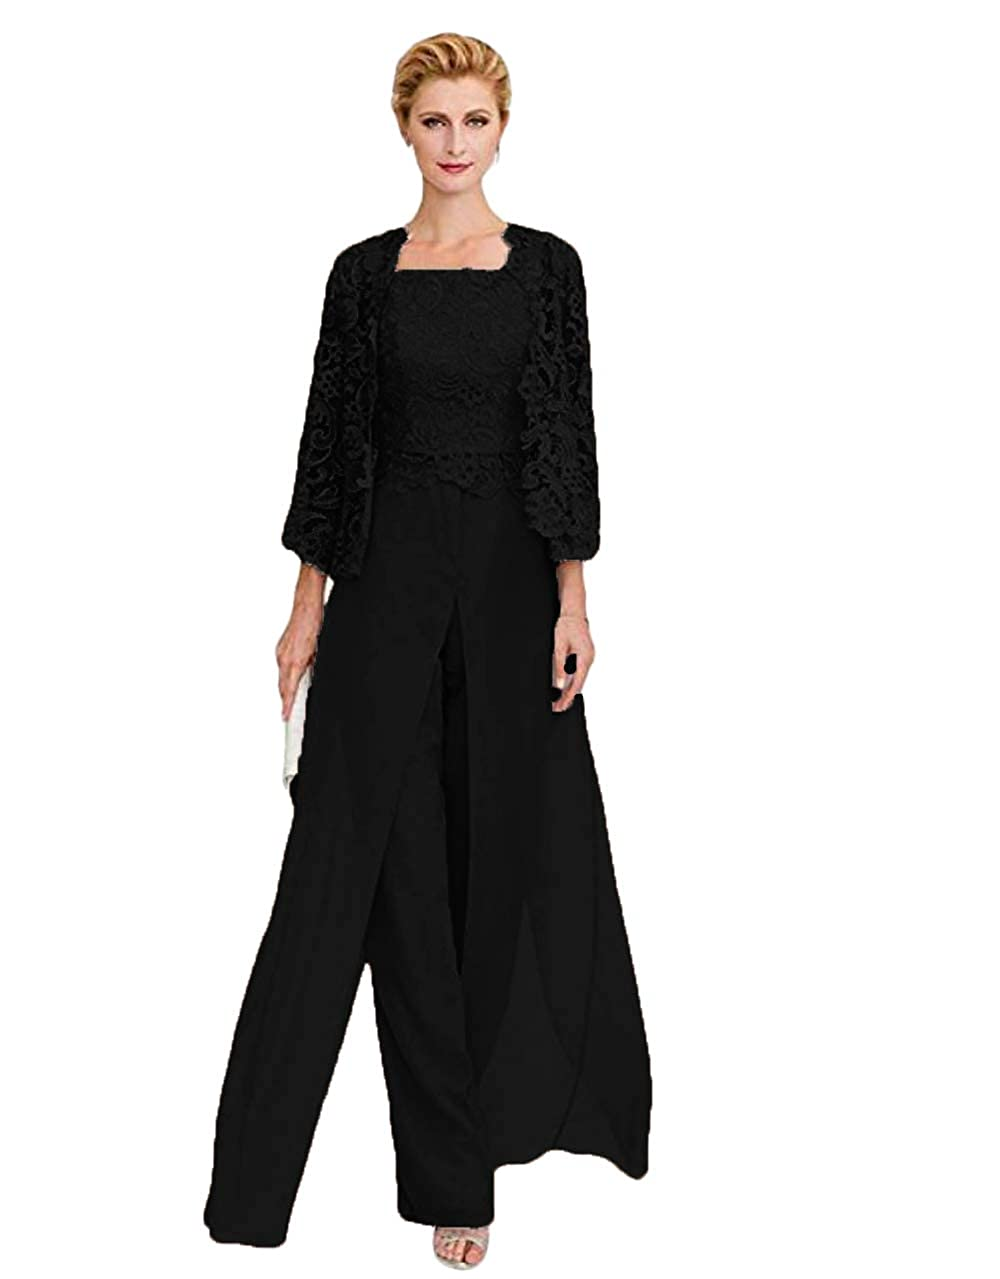 6d1f3b407f22 WZW Mother The Bride Dresses Front Slit Chiffon Pant Suit Three Pieces  Mother of Groom Gown Corded Lace at Amazon Women's Clothing store: